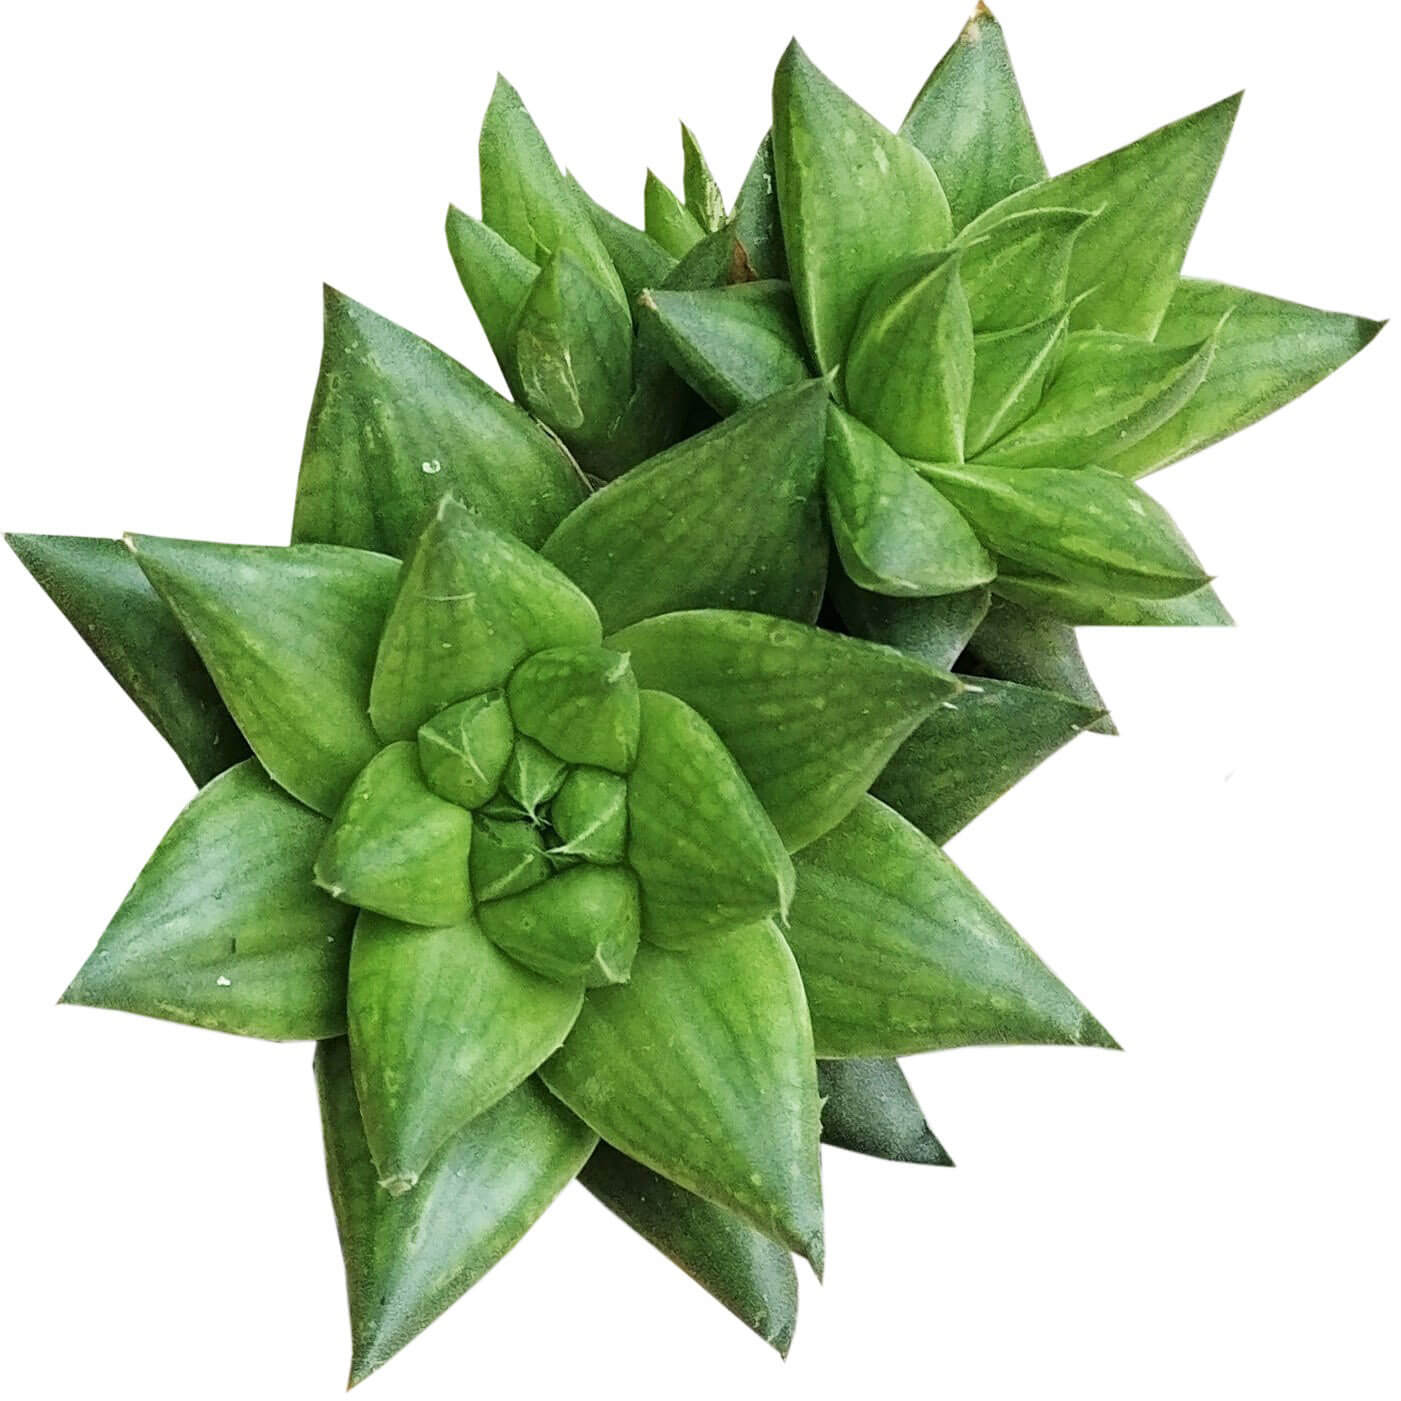 Haworthia batesiana for sale, monthly succulents, succulent subscription, succulent plant, cactus, succulent care, Succulents, succulents garden, Rare succulents, Haworthia batesiana in California, How to grow Haworthia batesiana